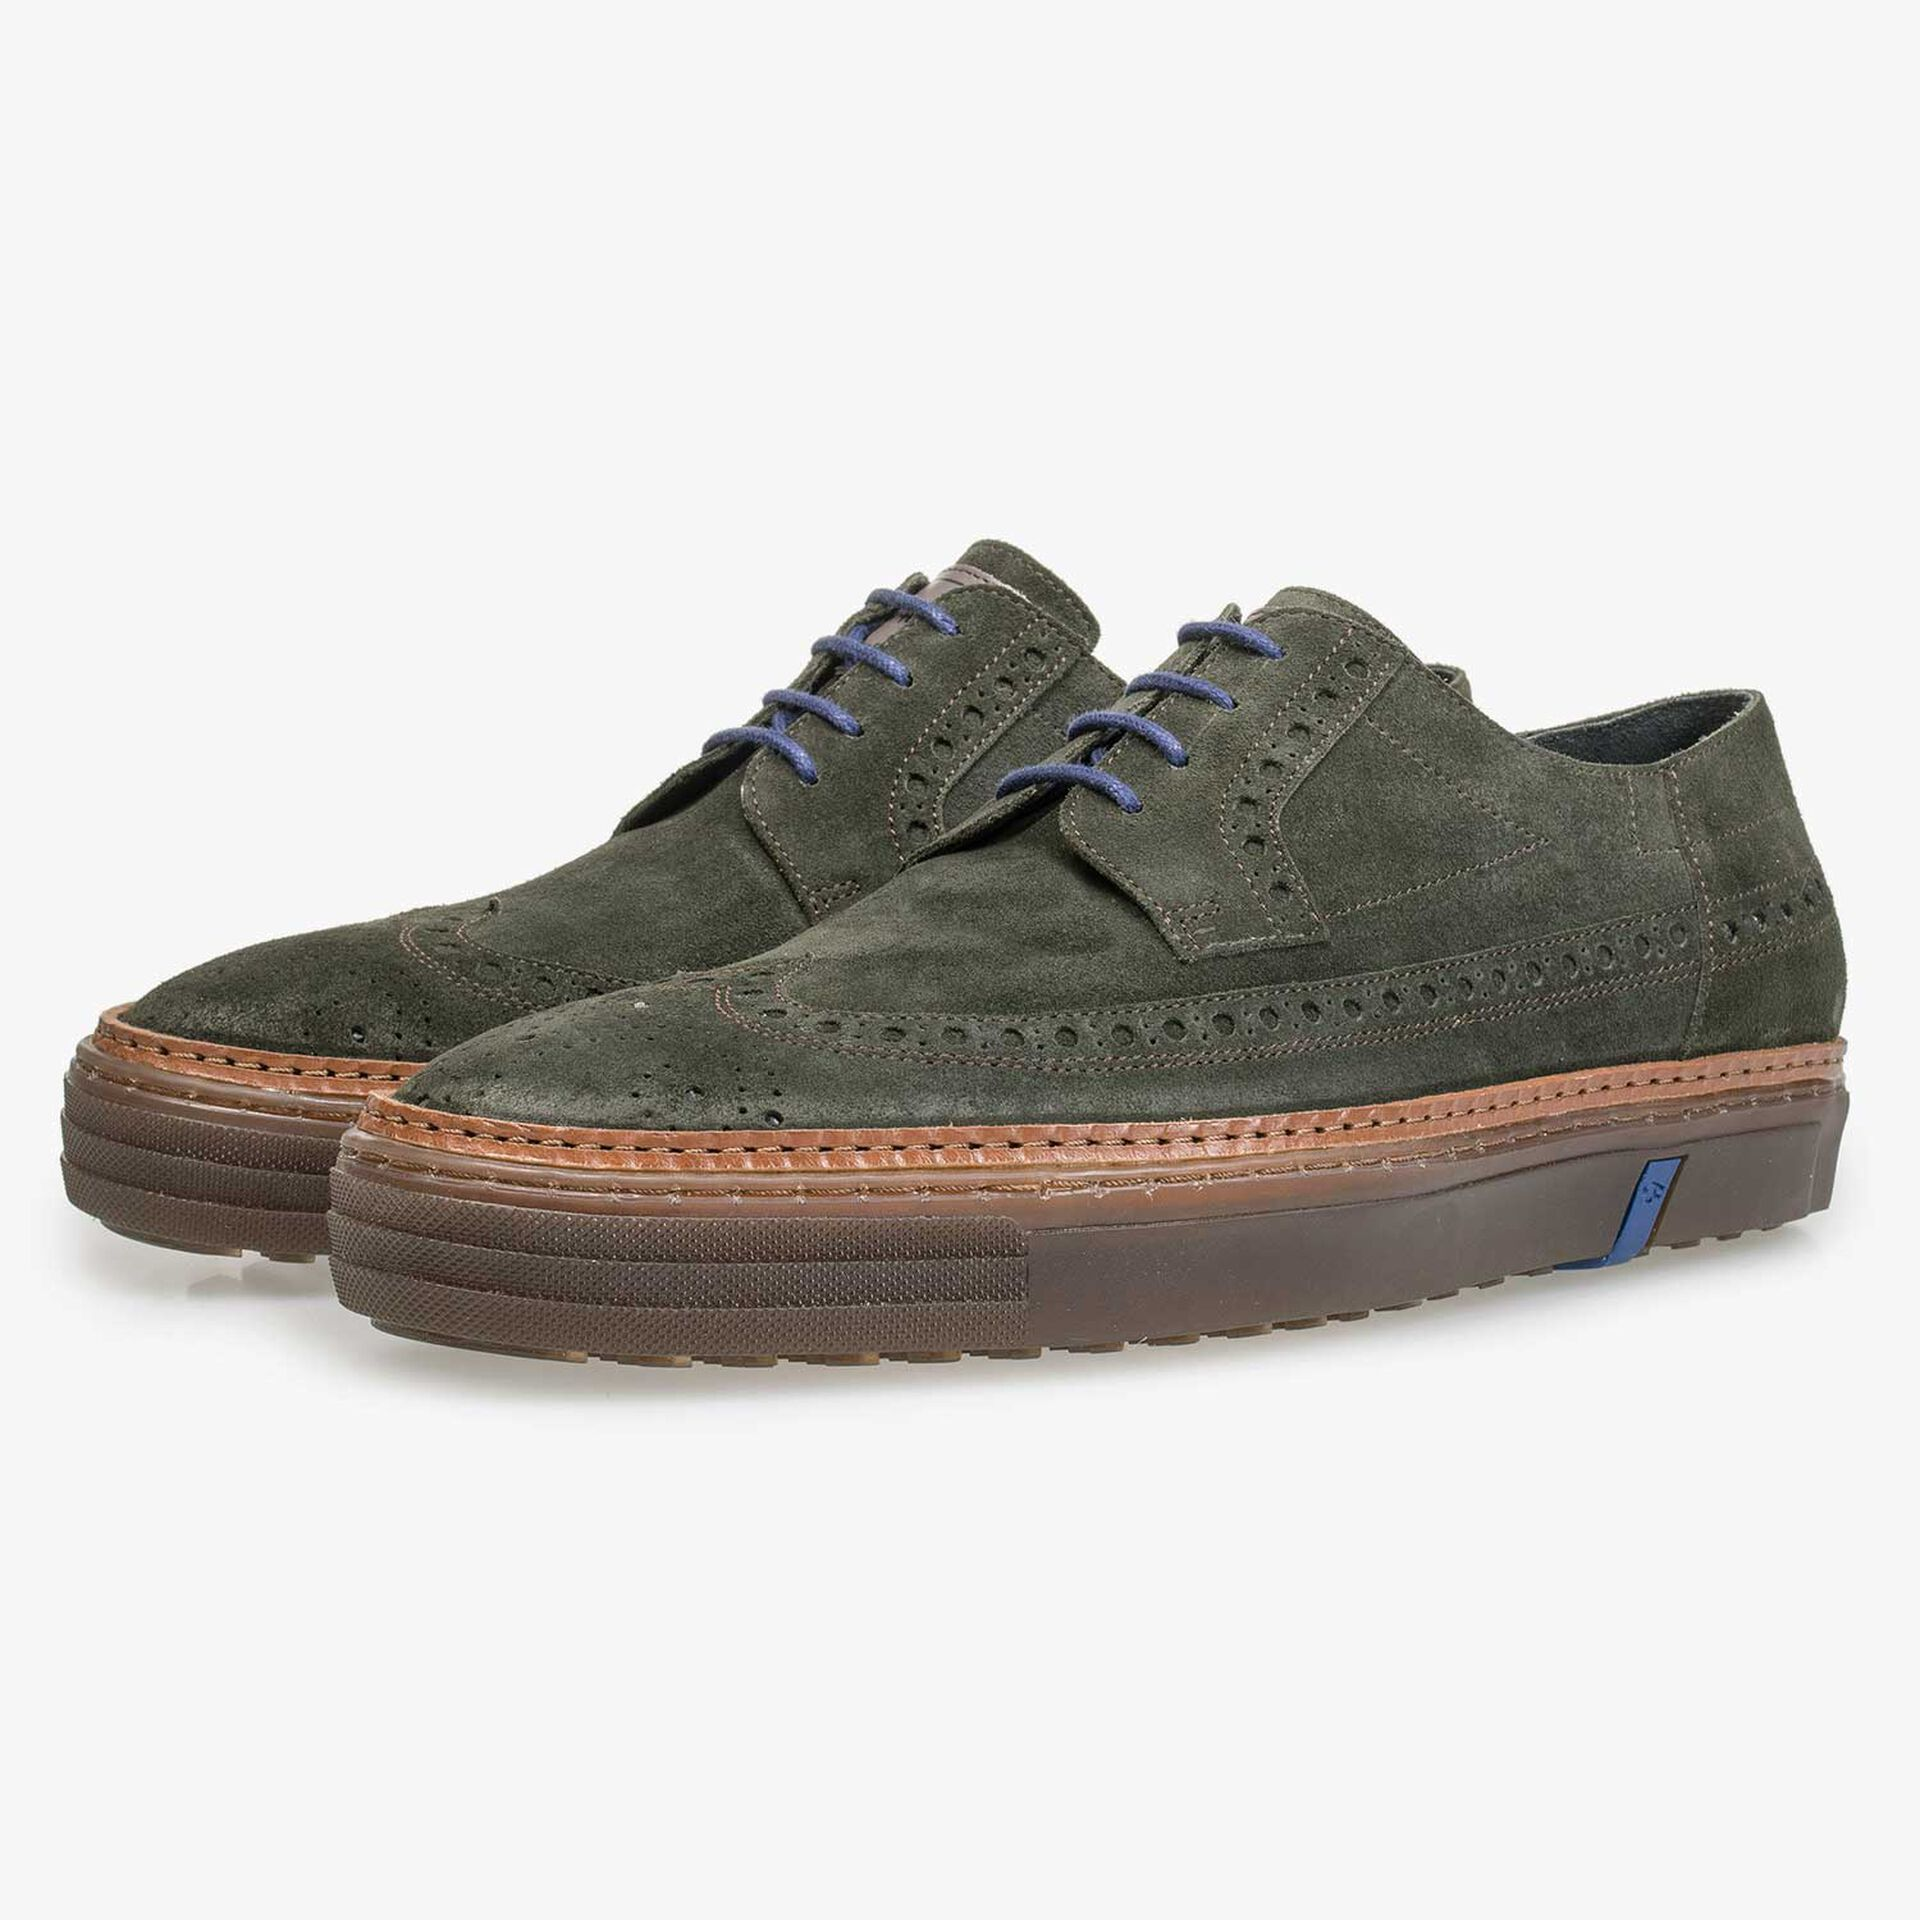 Green suede leather lace shoe